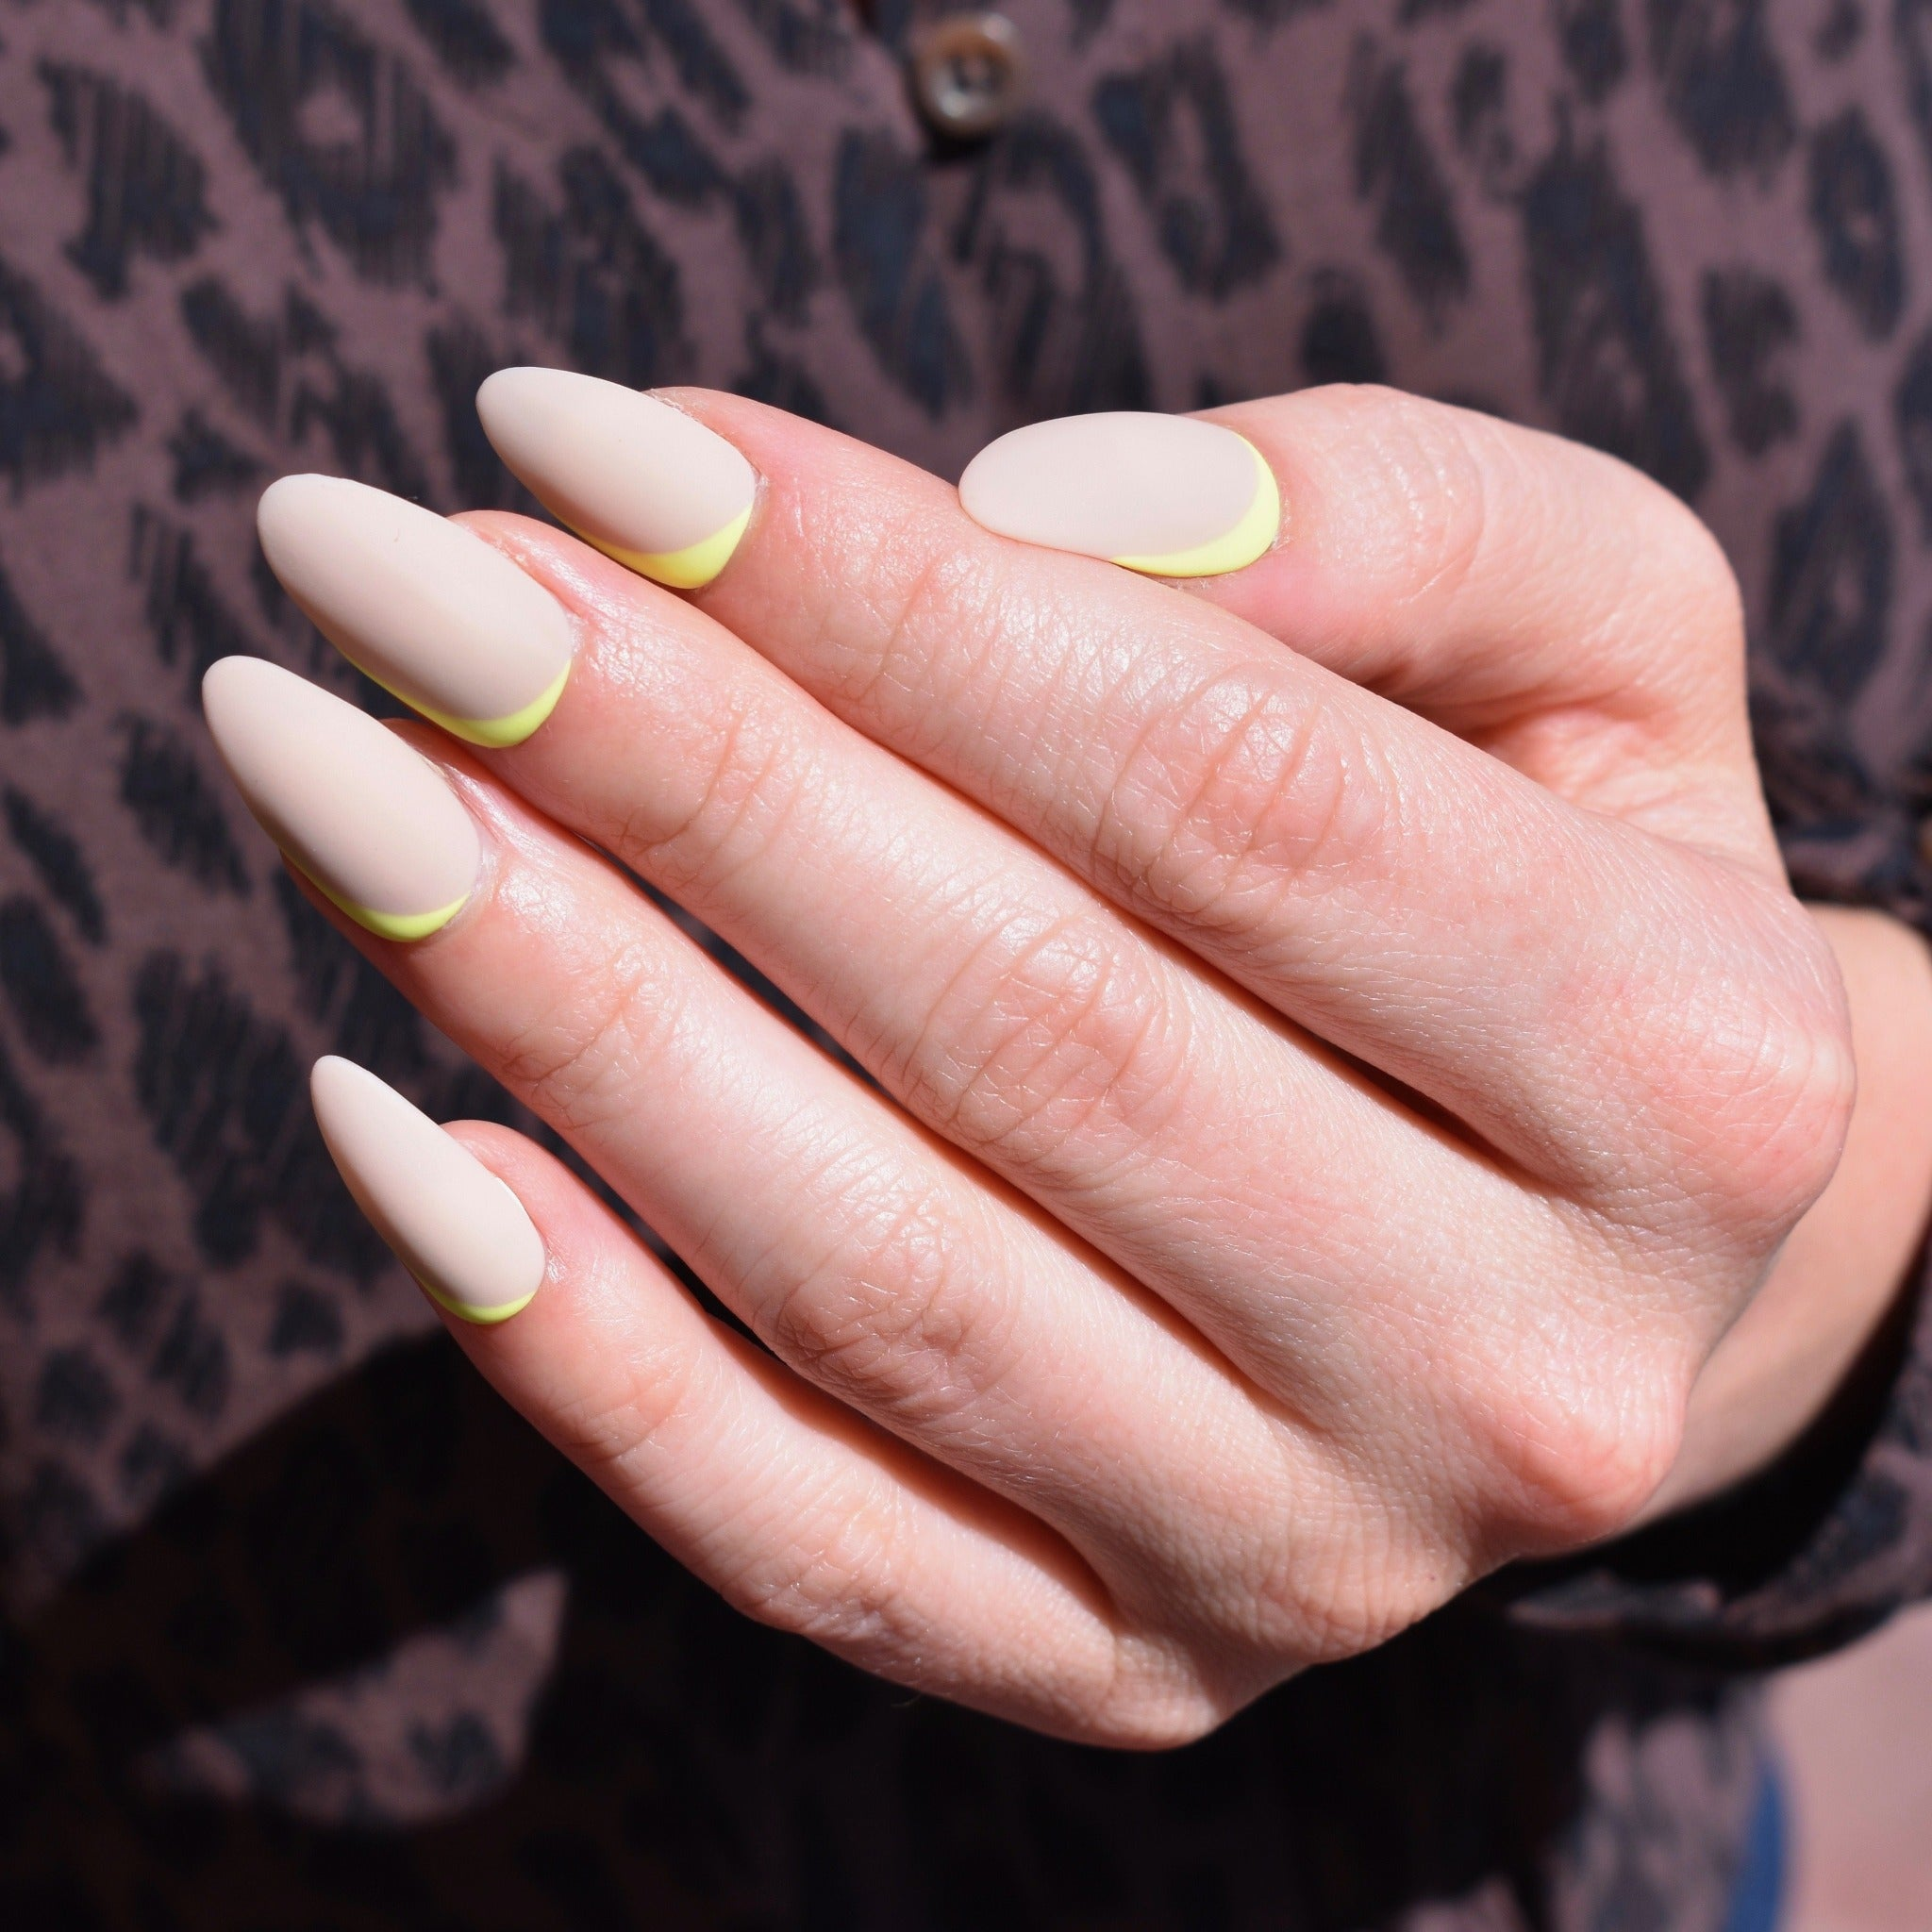 Hand-painted gel polish nail art press-ons.  Neon yellow off-centered accents swiped on the base of each nail and up one side.   Sand colored base with a fresh matte finish.  One had is pictured and the model is wearing a chocolate brown leopard print  button up shirt behind her hand.